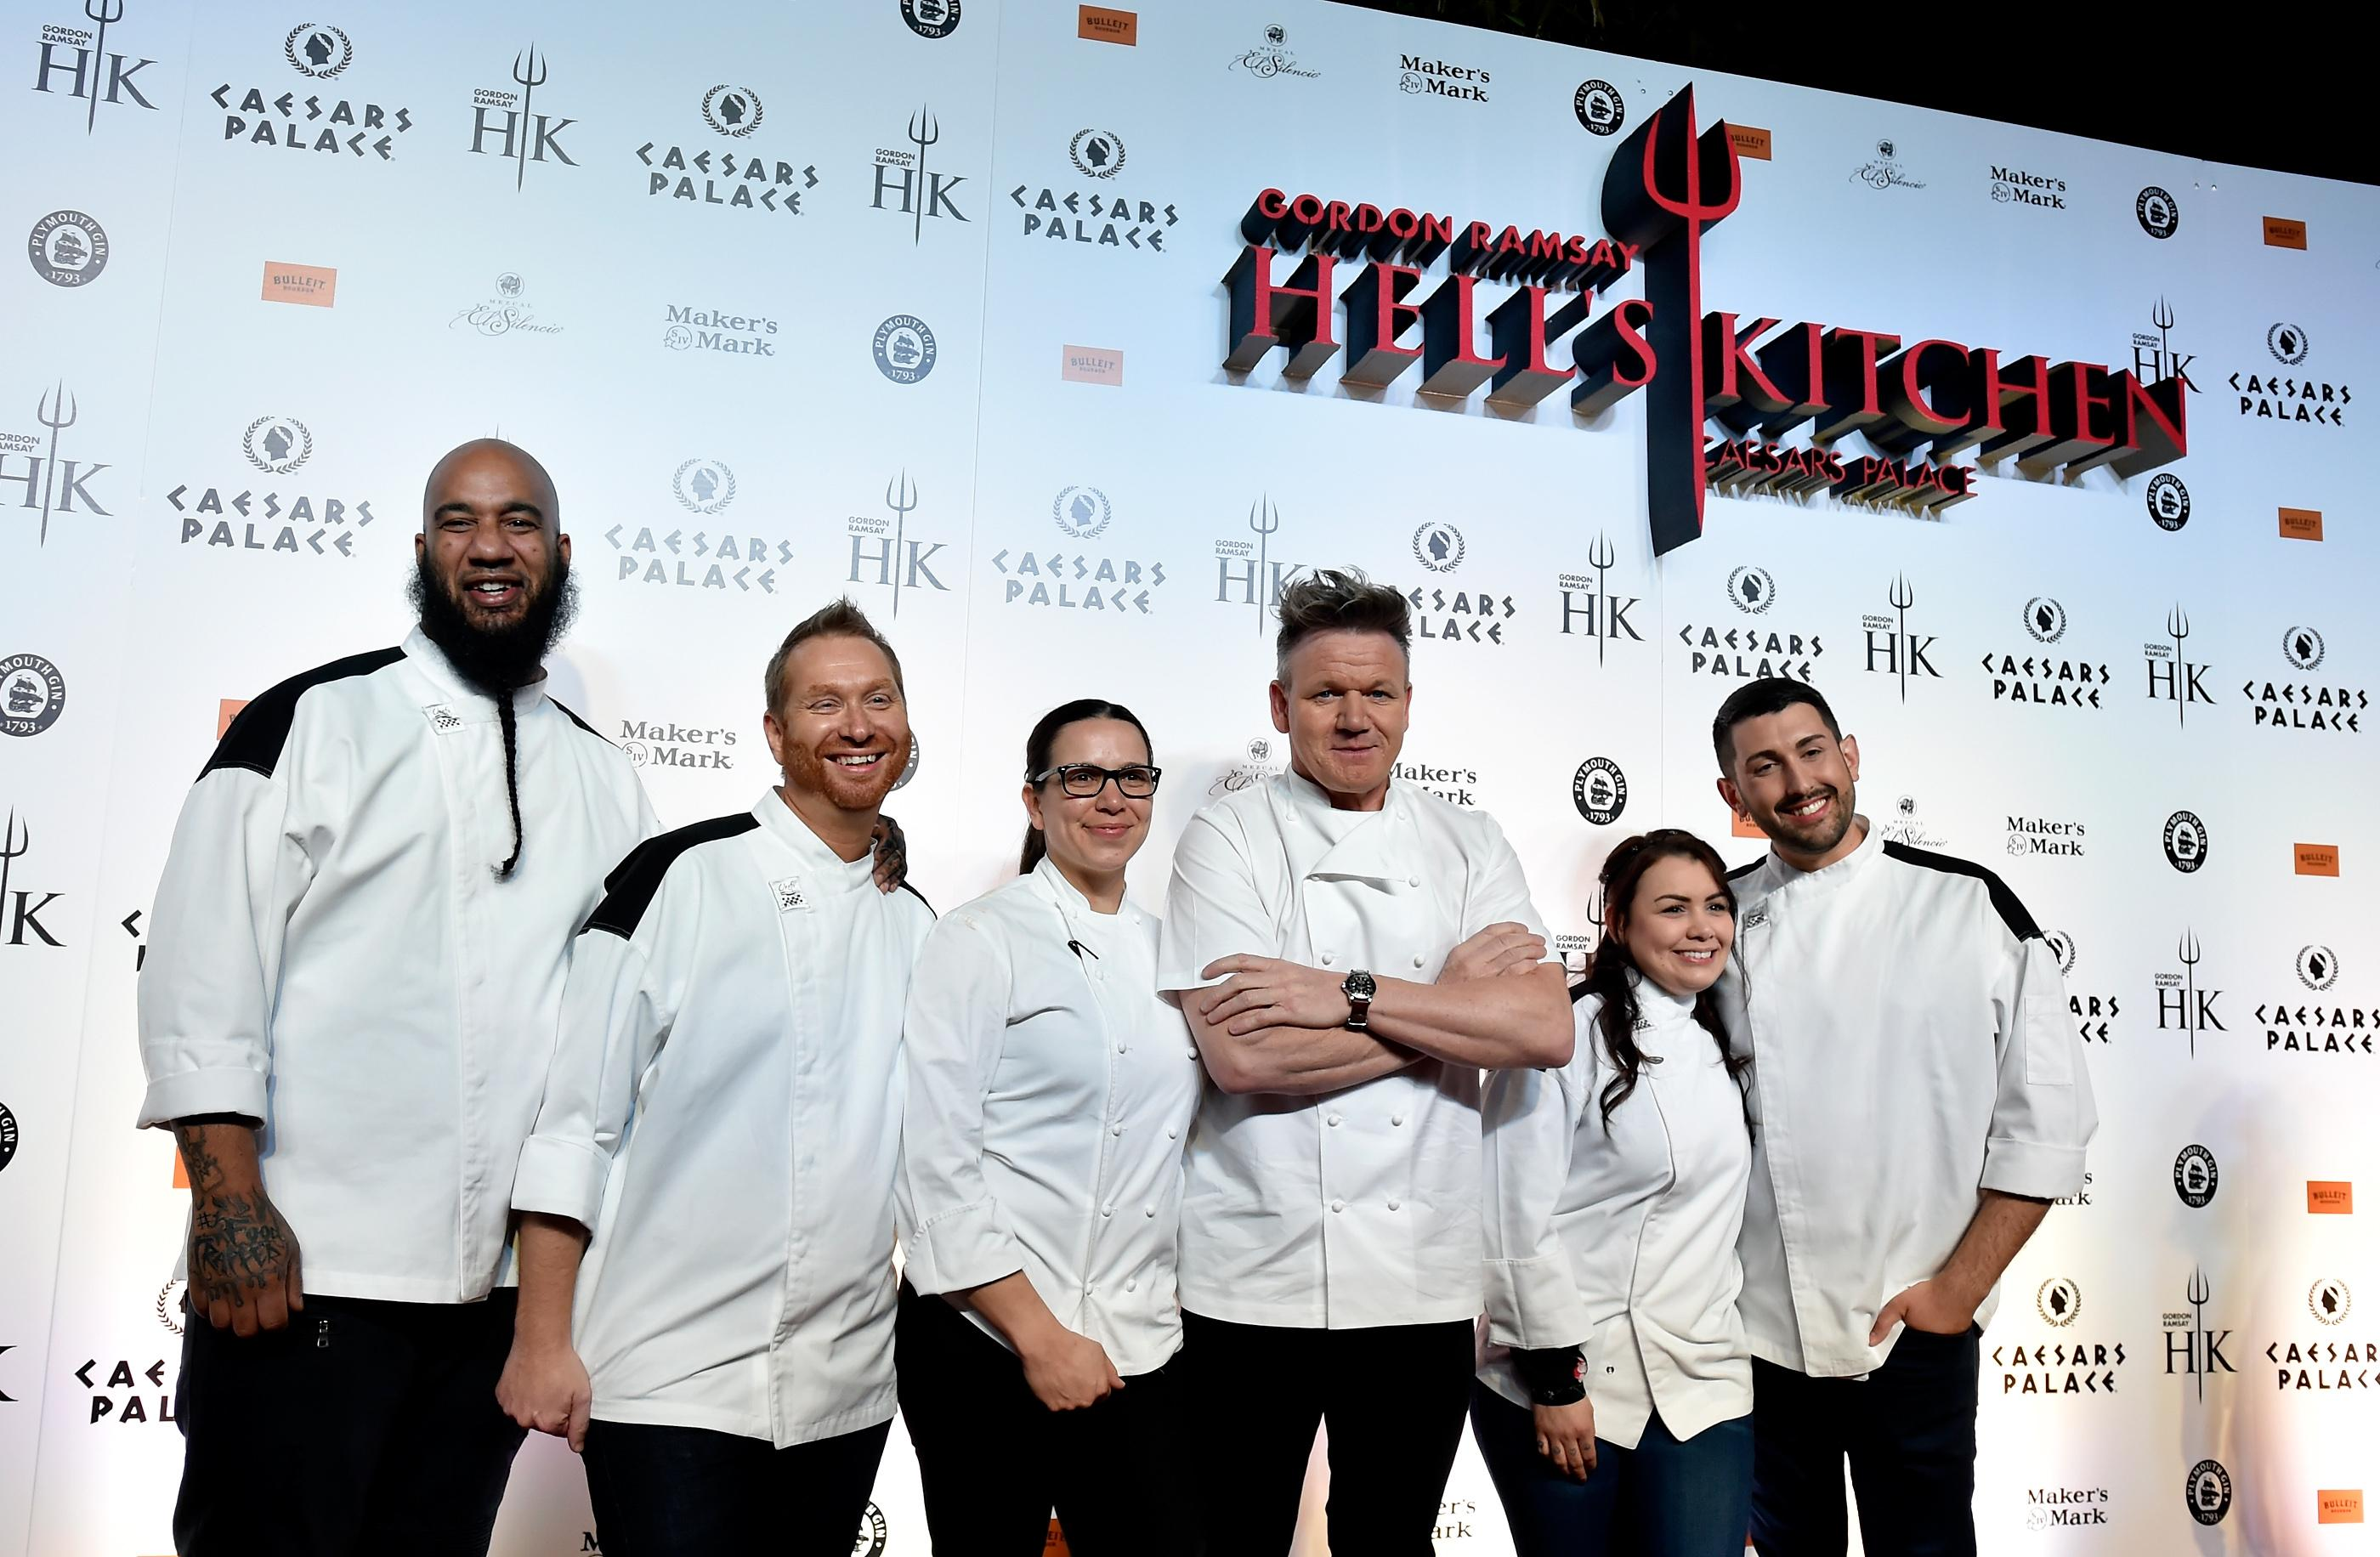 From left, Hell's Kitchen season 17 finalists Emili Medley, Benjamin Knack, Hell's Kitchen season 10 winner Christina Wilson, chef Gordon Ramsay and Hell's Kitchen season 17 finalists Michelle Tribble and Nick Bond attend the grand opening of Gordon Ramsay Hell's Kitchen at Caesars Palace Friday, Jan. 26, 2018, in Las Vegas. CREDIT: David Becker/Las Vegas News Bureau